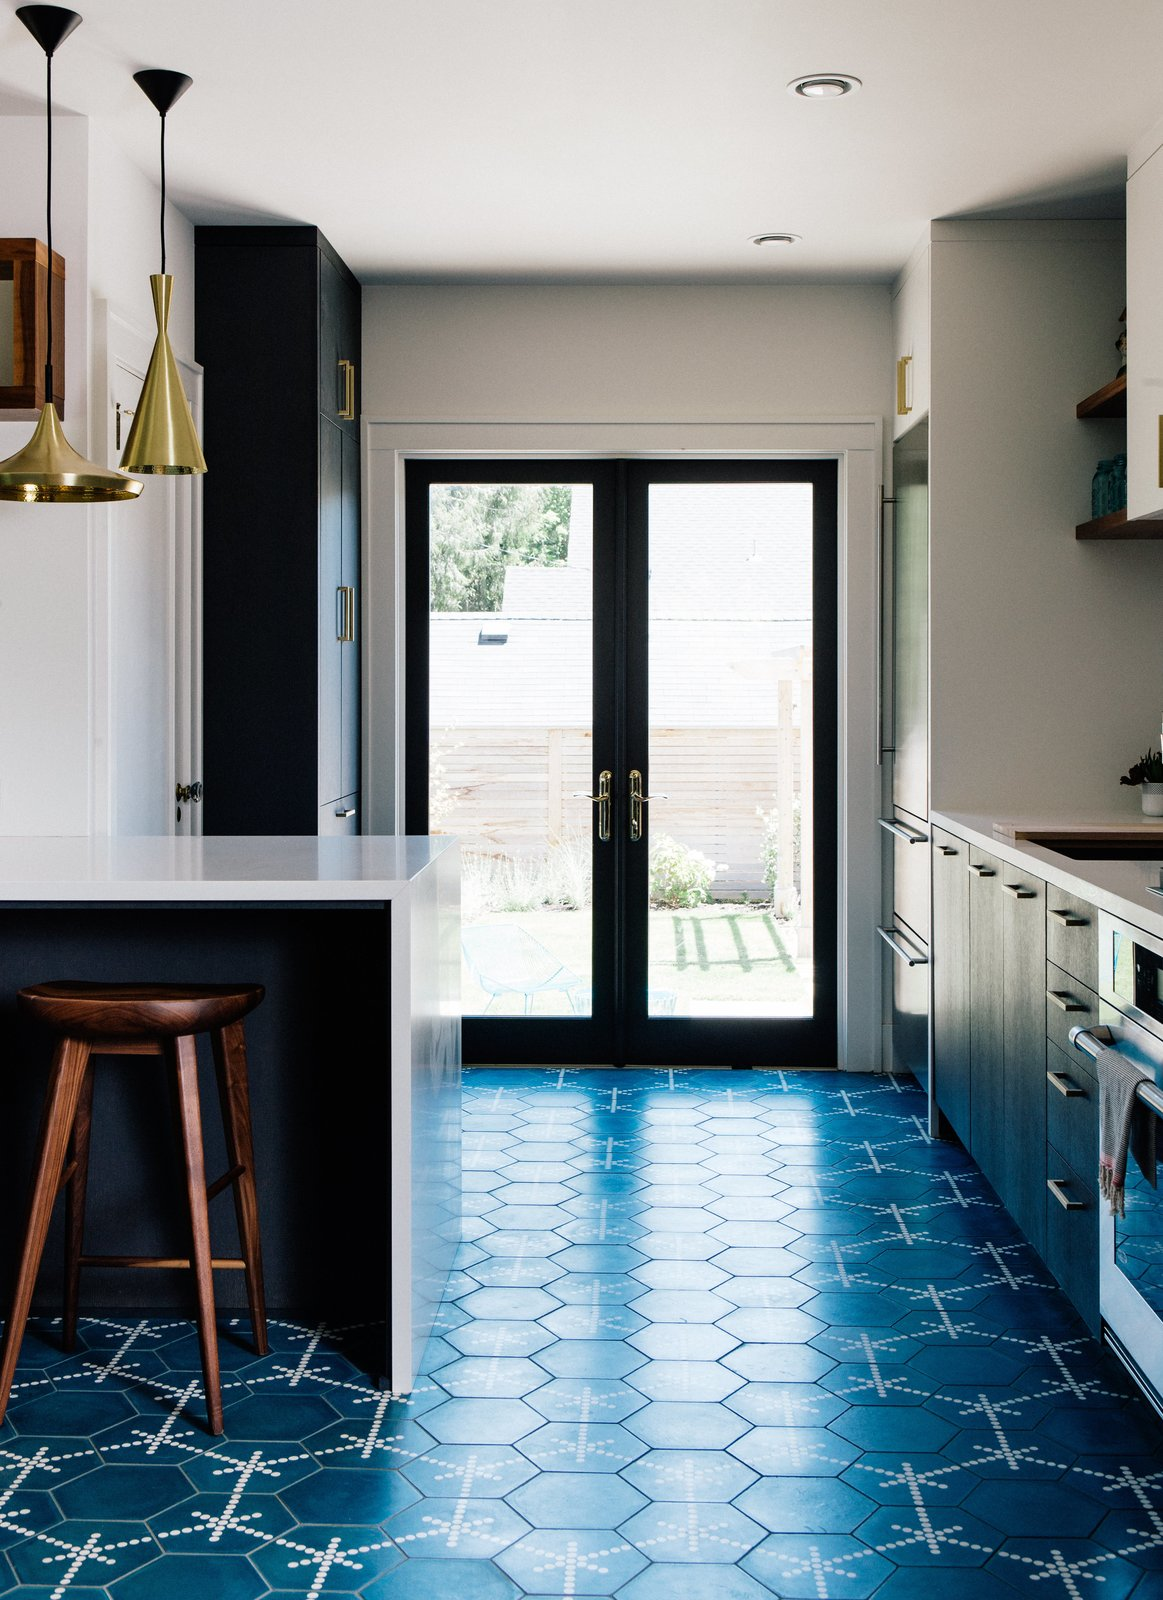 Vintage lover Sarah Benson worked with local firm Bright Designlab to gently update her 1925 home in Portland, Oregon. In the kitchen, Moroccan cement tiles featuring a blue Hex Dot pattern by Popham Designs cover the floor. A 1925 Portland Home Is a Rad Mashup of 20th-Century Styles - Photo 2 of 10